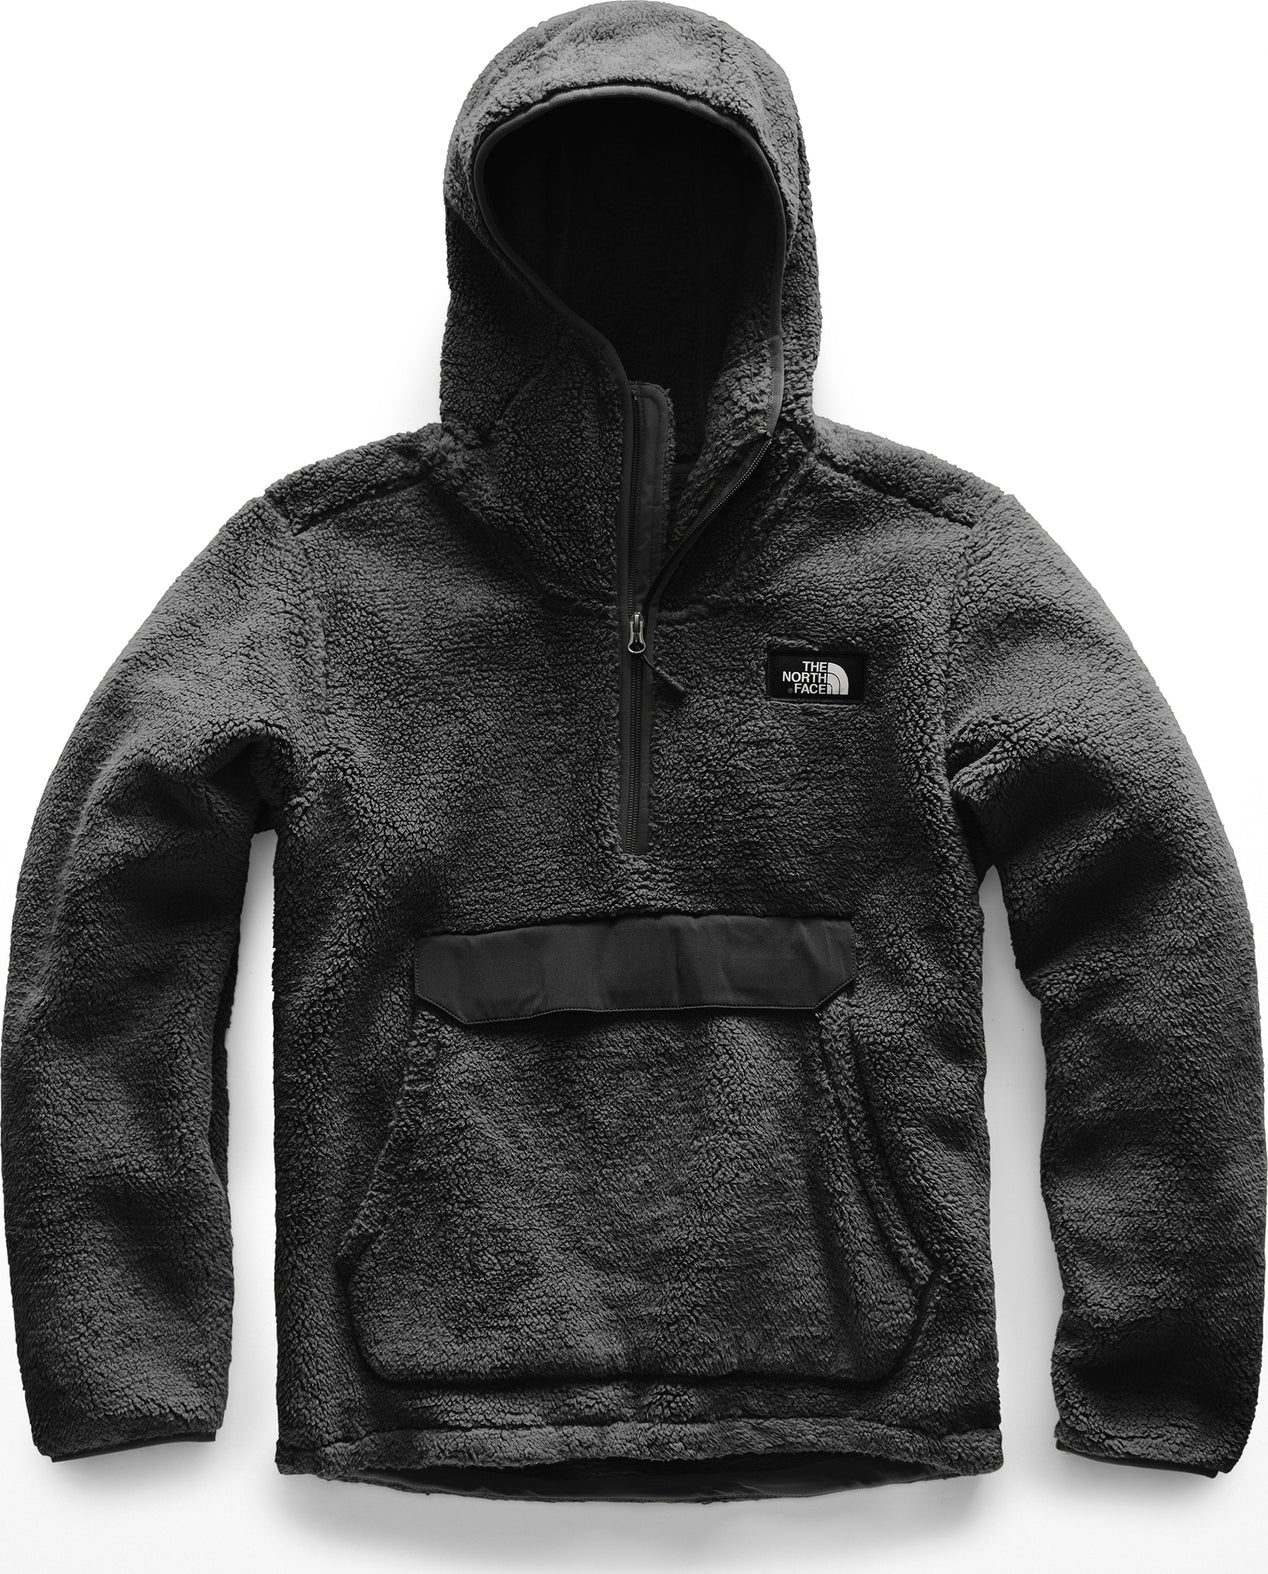 6b3ca79a8 The North Face Campshire Pullover Hoodie - Men's